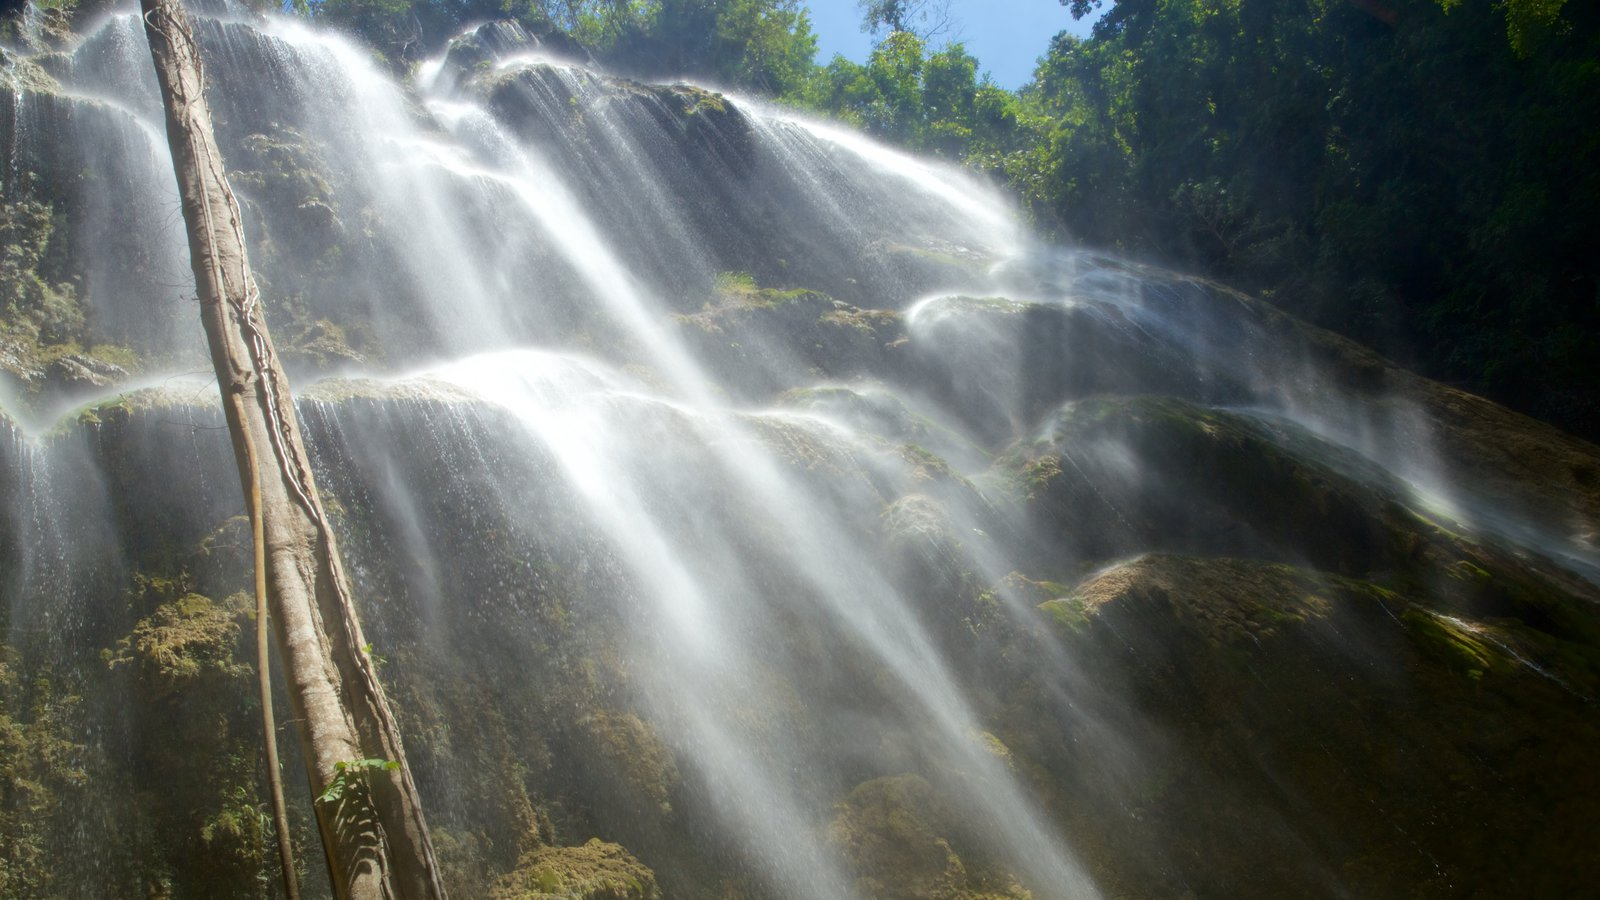 Cebu which includes a waterfall